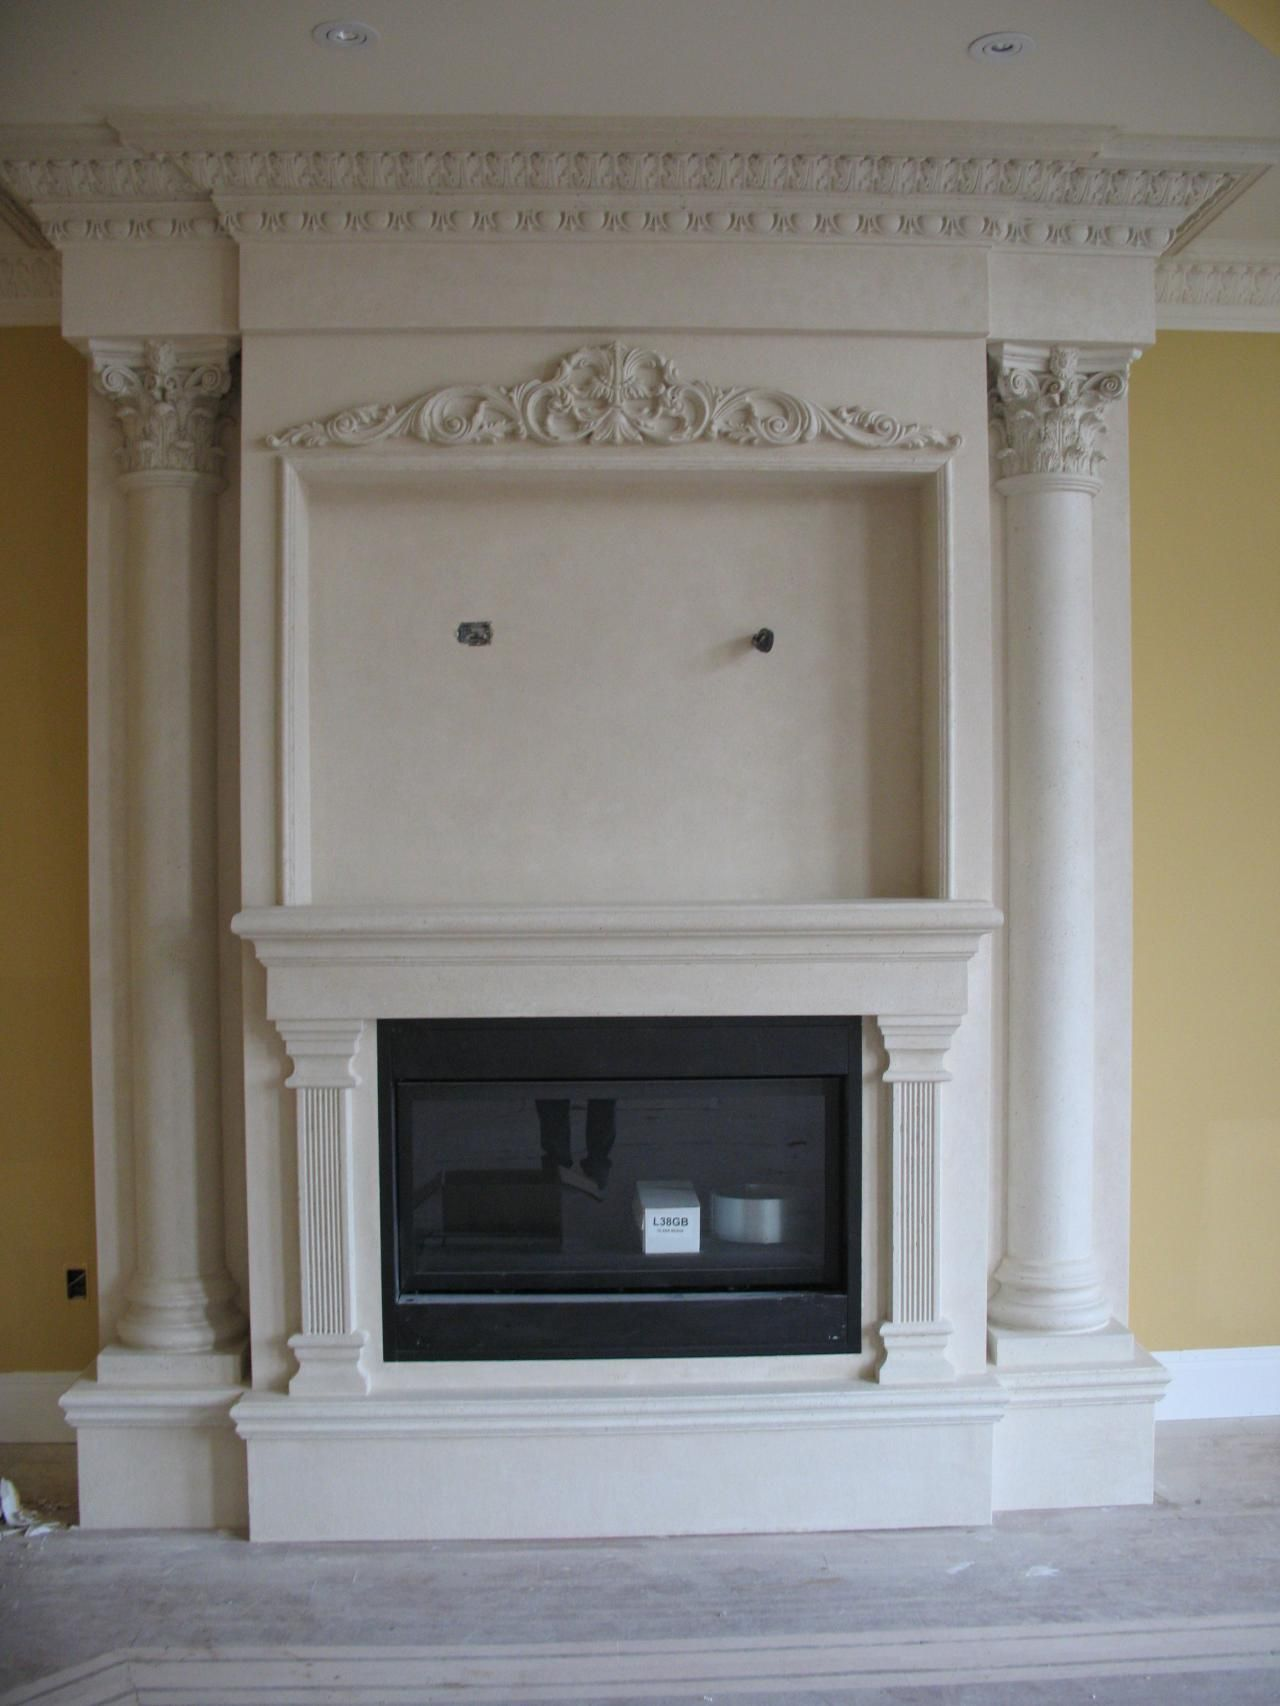 Home Depot Gas Fireplace Home Decor Photos Gallery Lovely Mantel For Fireplace #2 Fireplace Mantel Designs